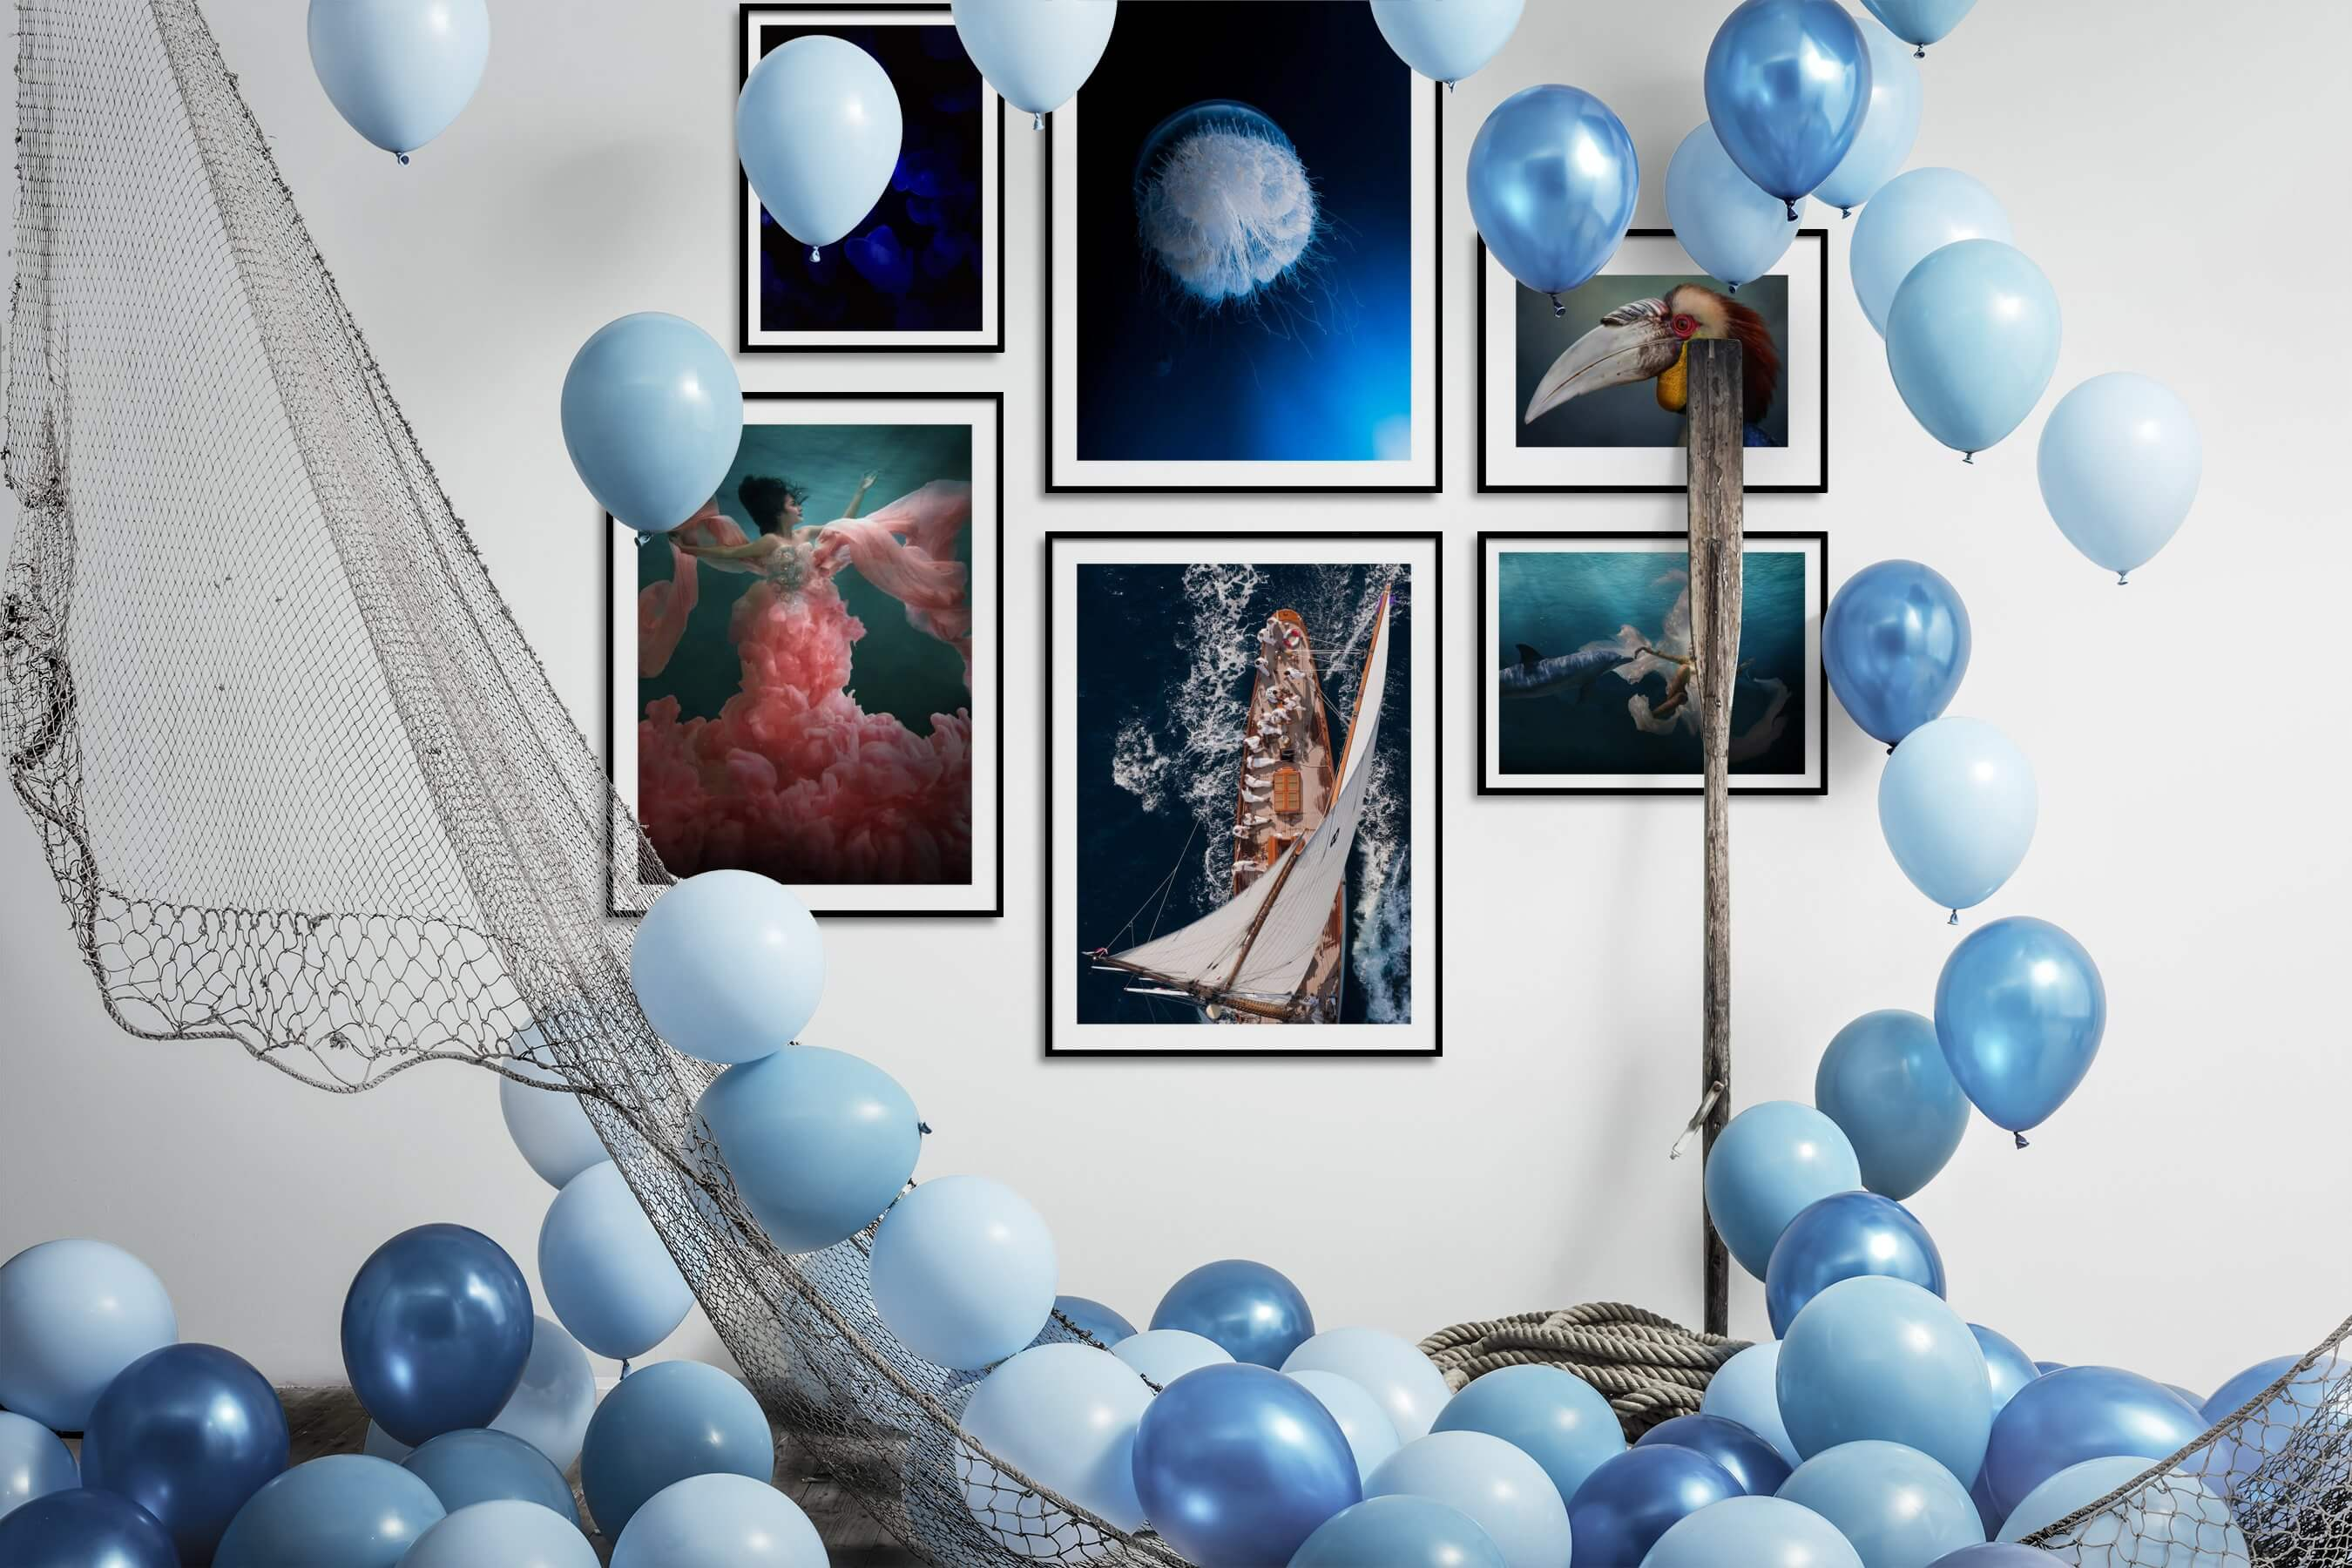 Gallery wall idea with six framed pictures arranged on a wall depicting Animals, For the Minimalist, Fashion & Beauty, and Beach & Water